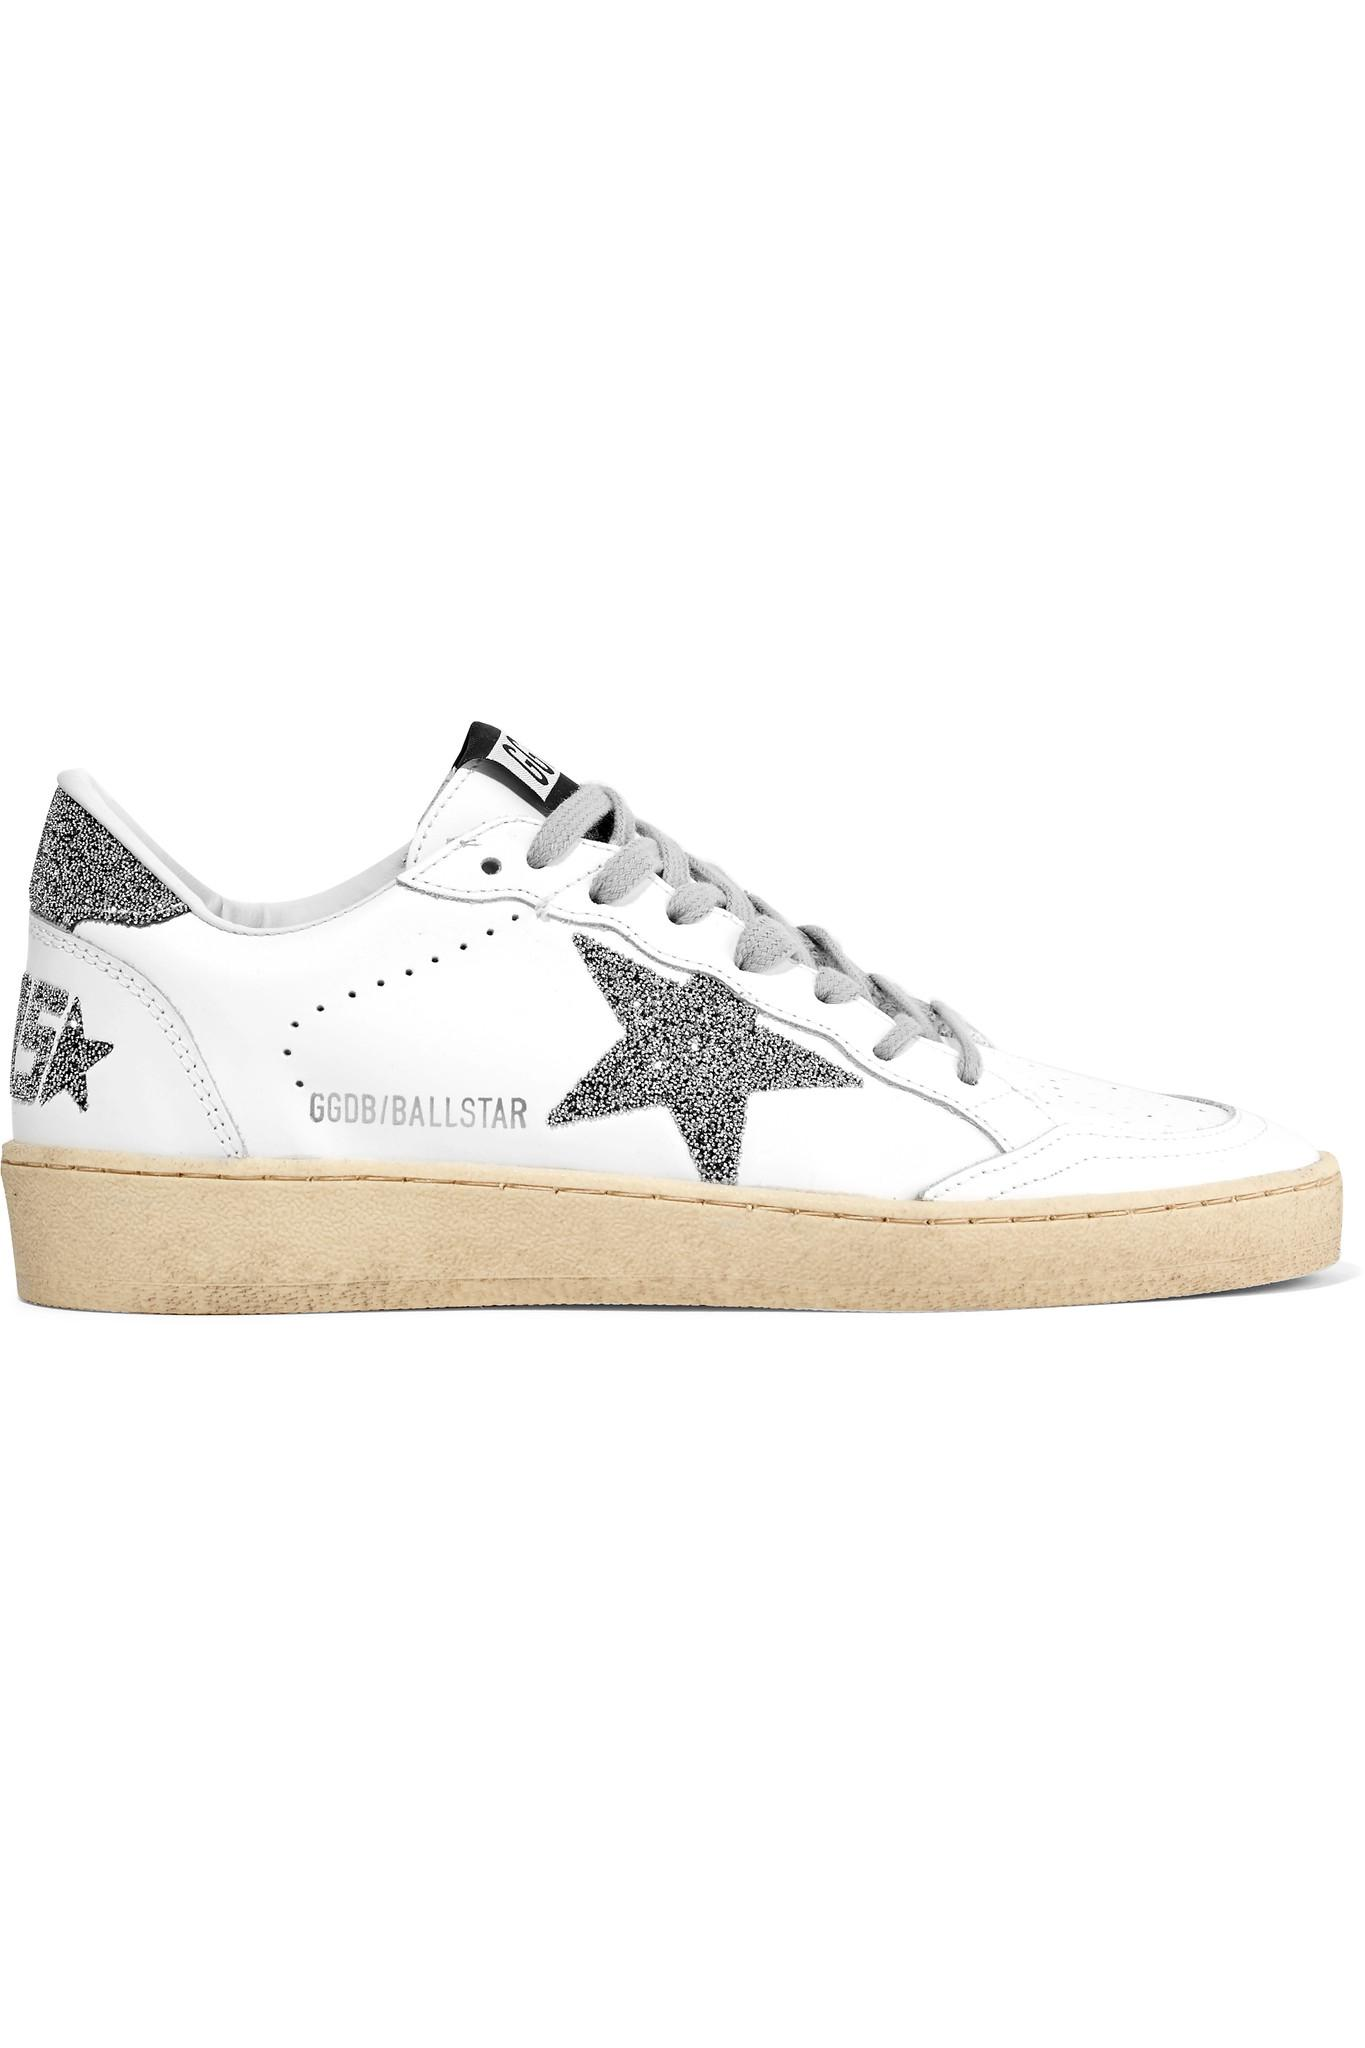 e812b5a3ab5e Golden Goose Deluxe Brand. Women s White Ball Star Swarovski Crystal- embellished Leather Trainers